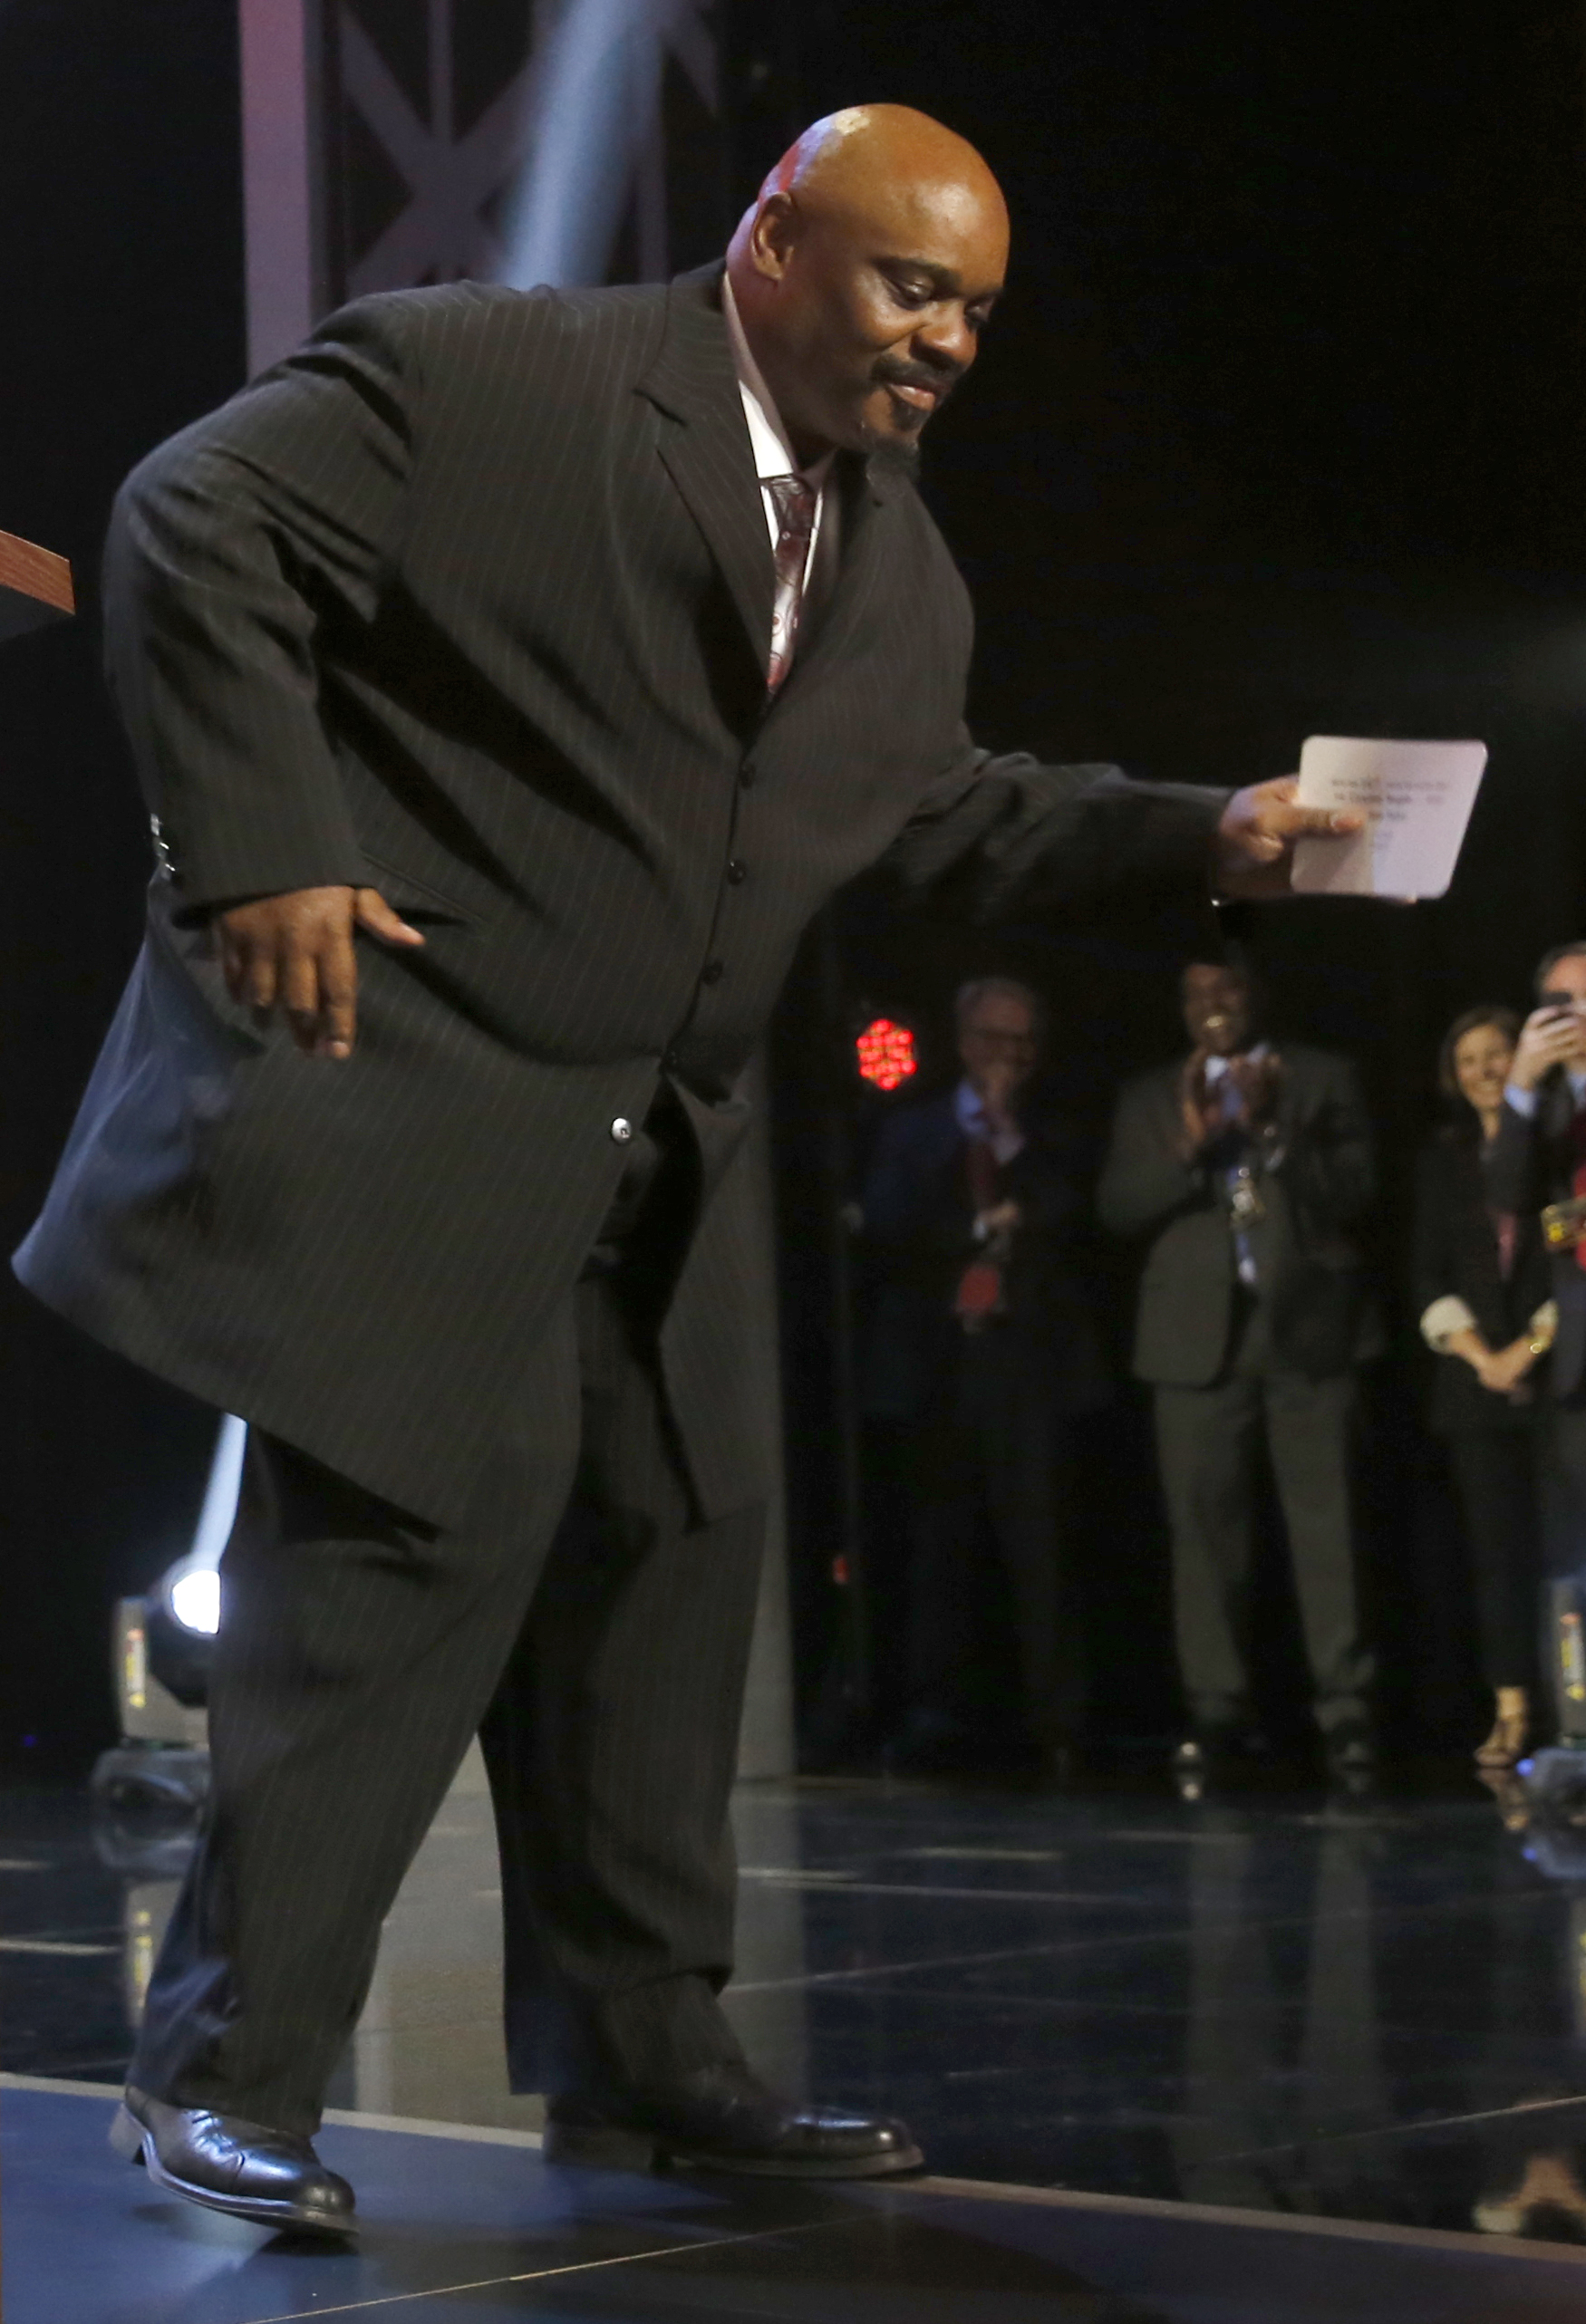 Former NFL player Cincinnati Bengals Ickey Woods does the Ickey Shuffle before he announces that the Bengals selects Oregon offensive lineman Jake Fisher as the 53rd pick in the second round of the 2015 NFL Football Draft,  Friday, May 1, 2015, in Chicago